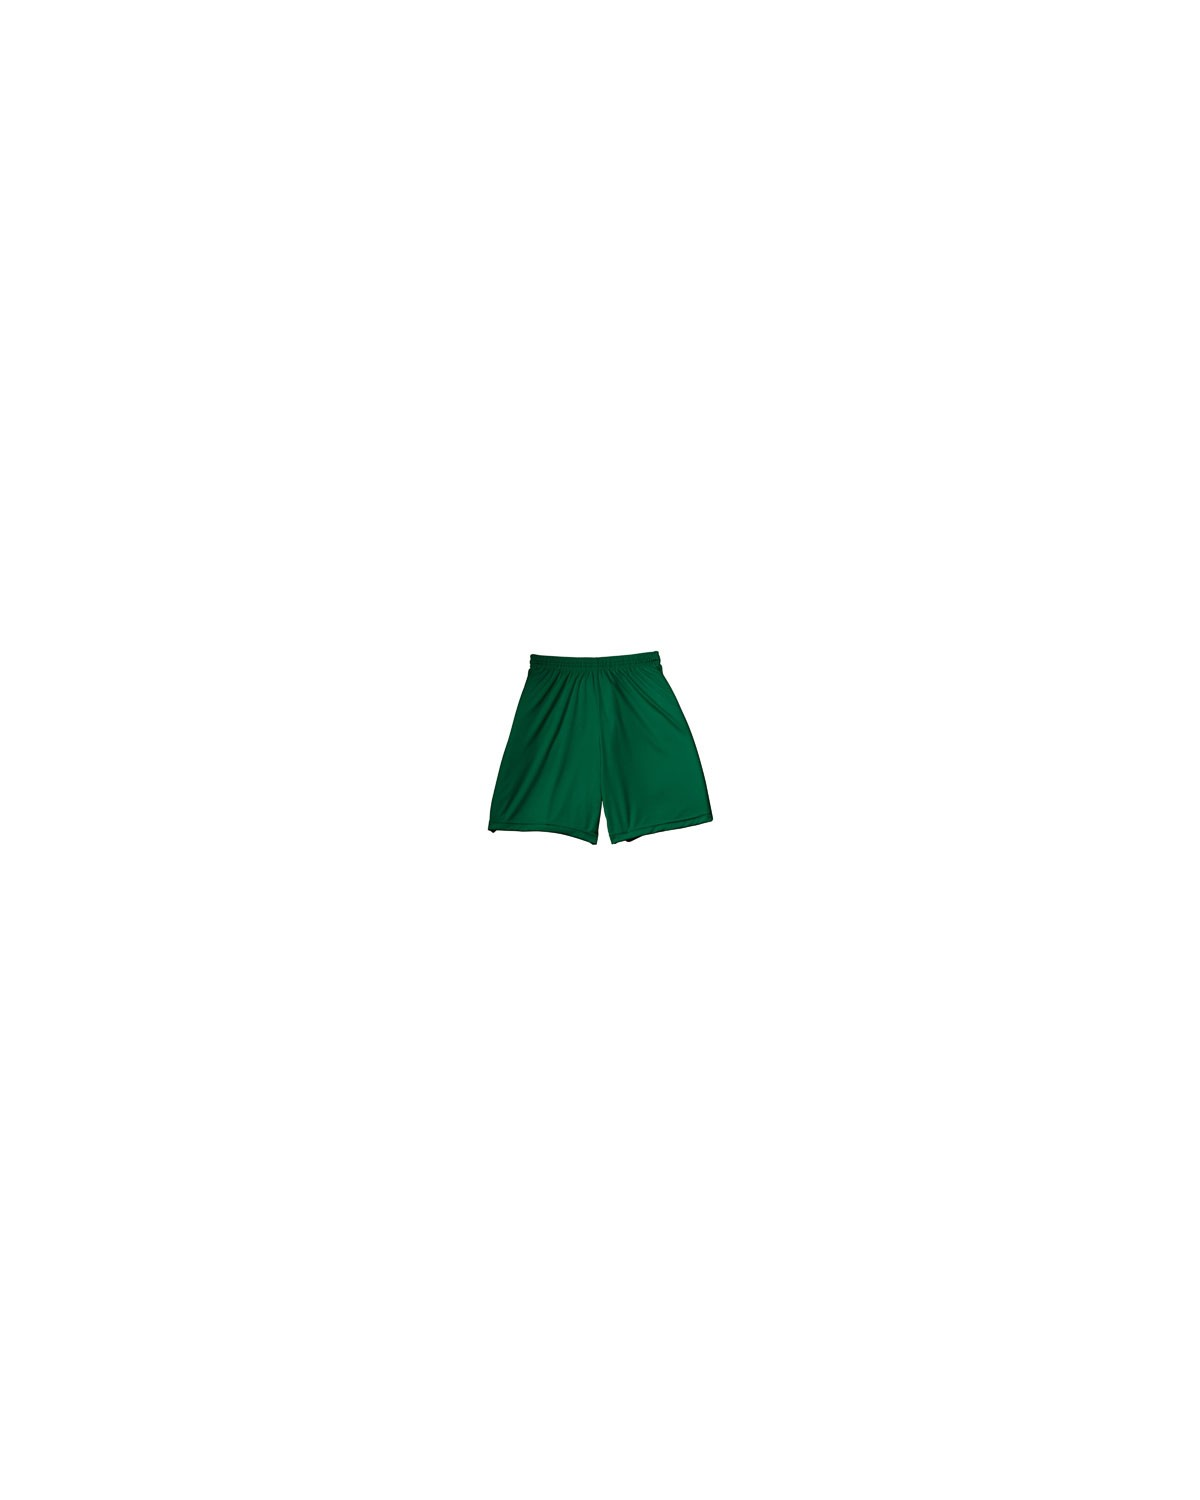 N5244 A4 FOREST GREEN